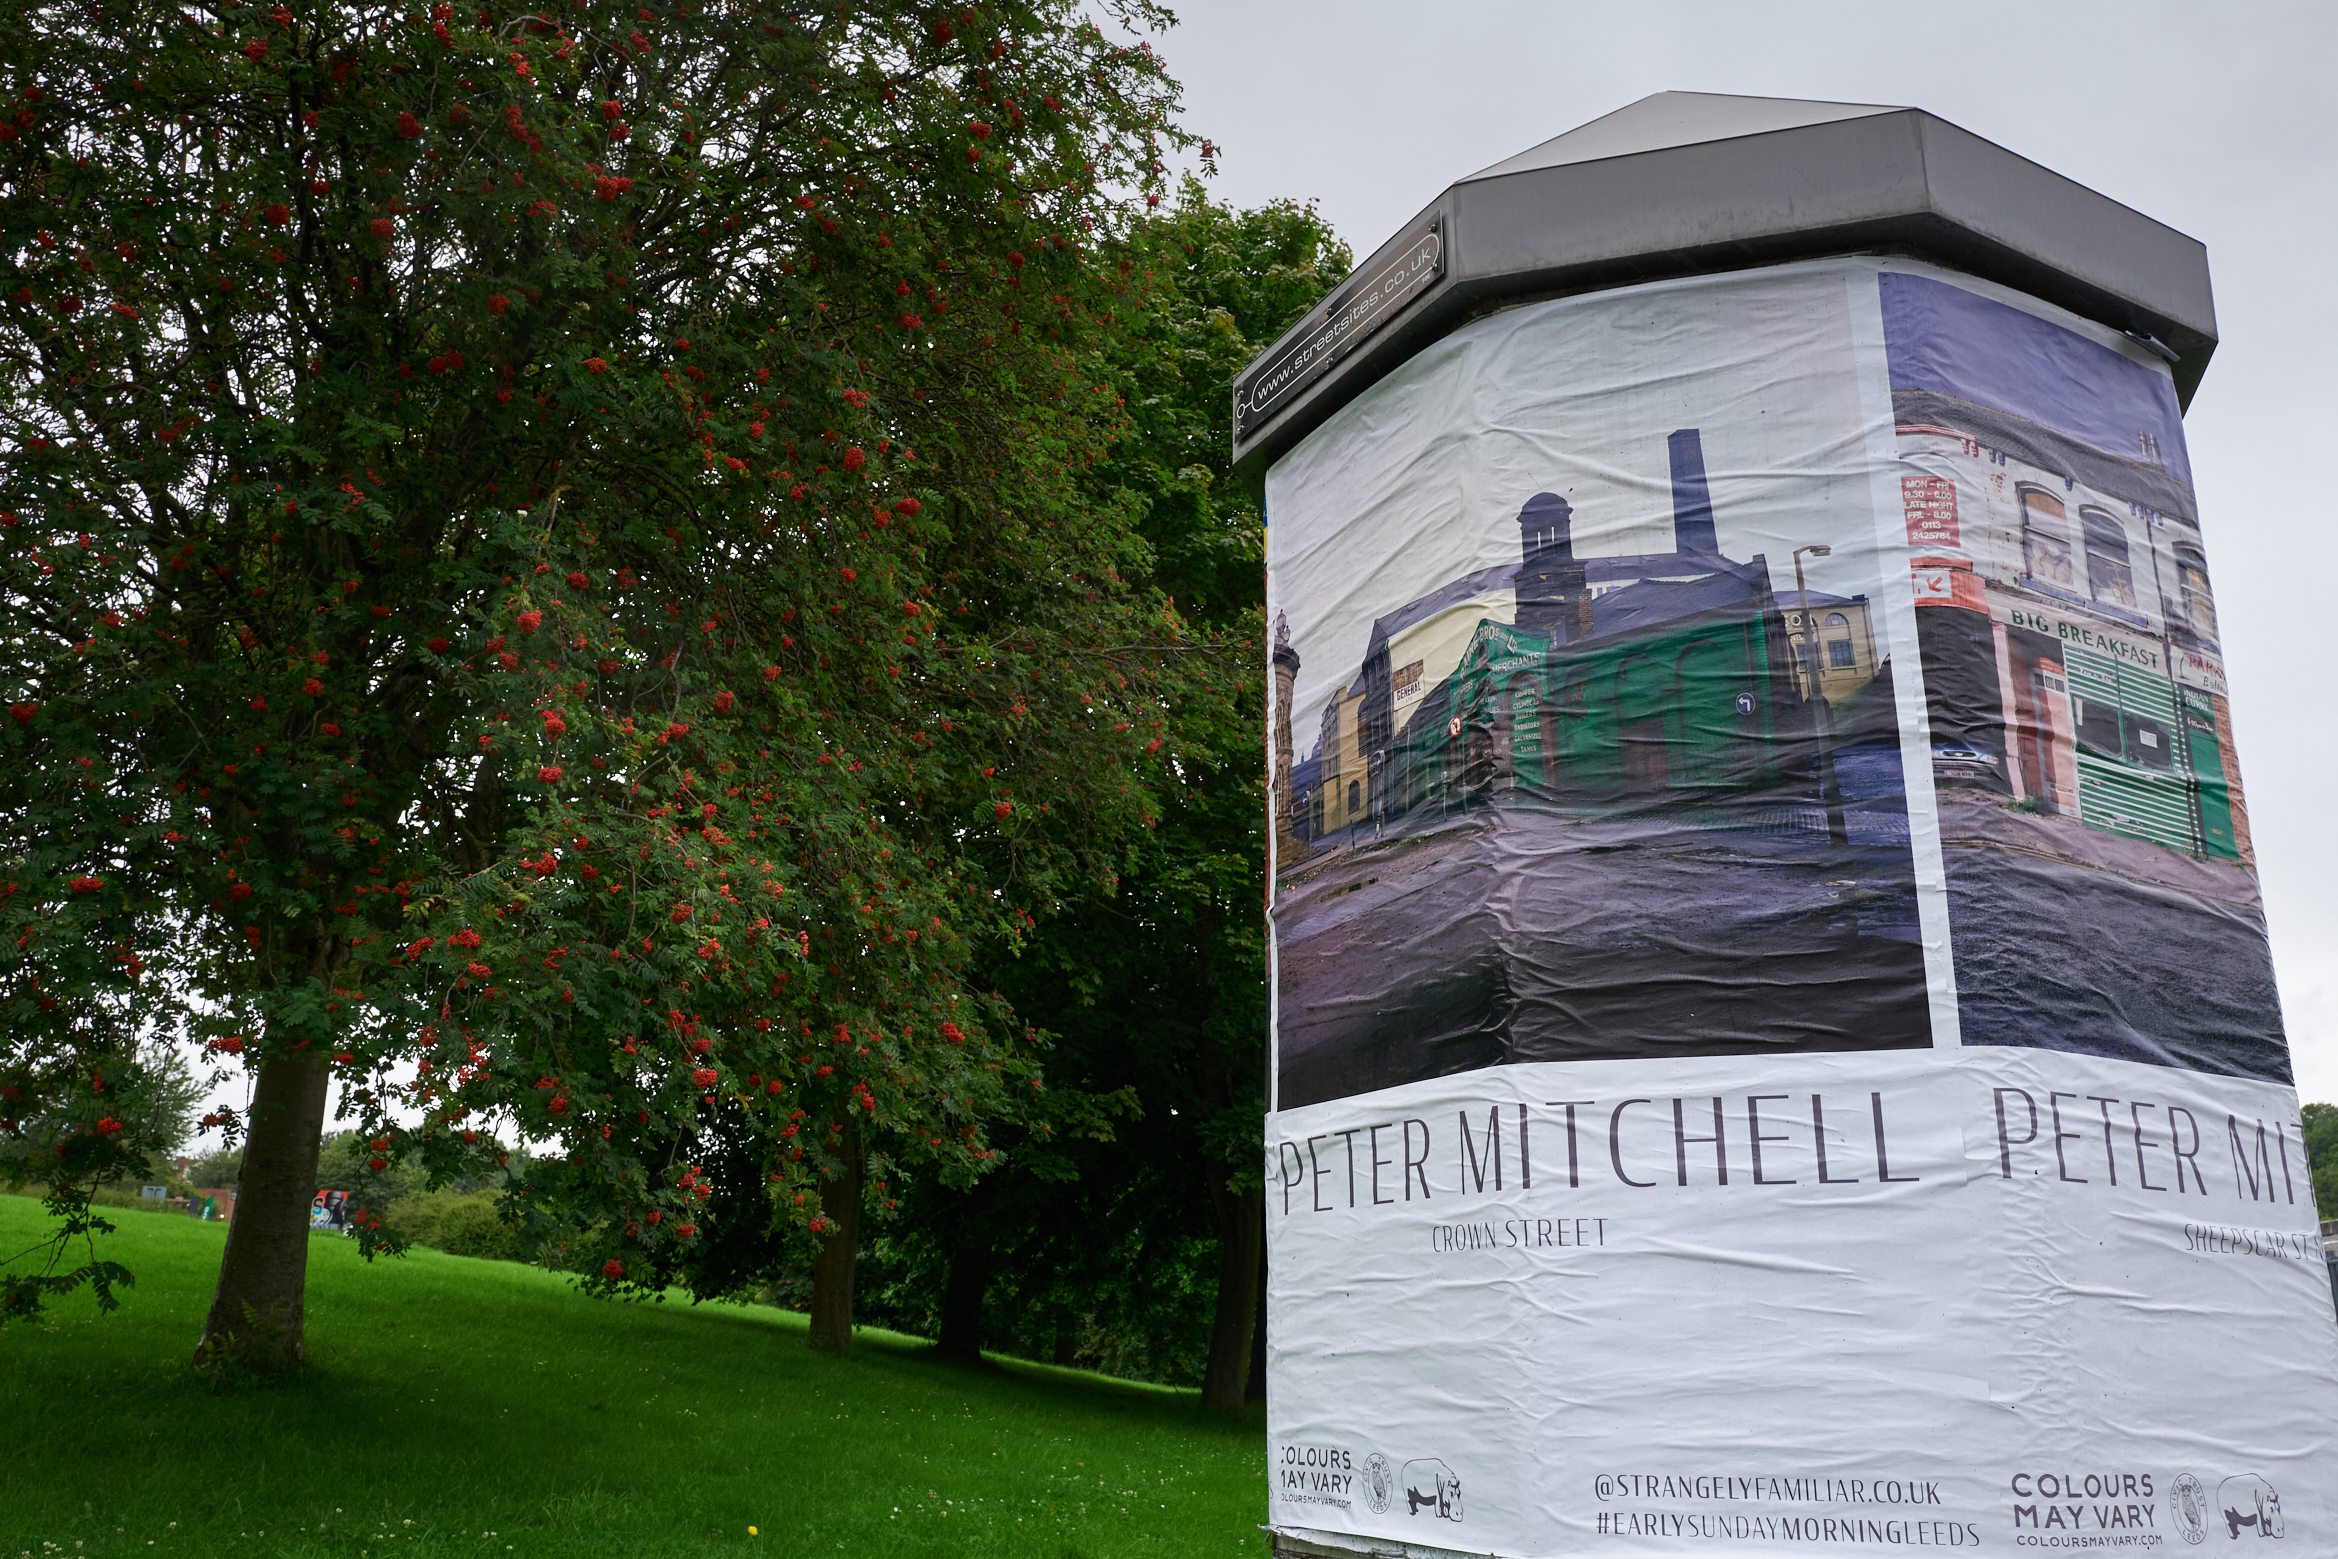 Peter Mitchell poster on a poster drum